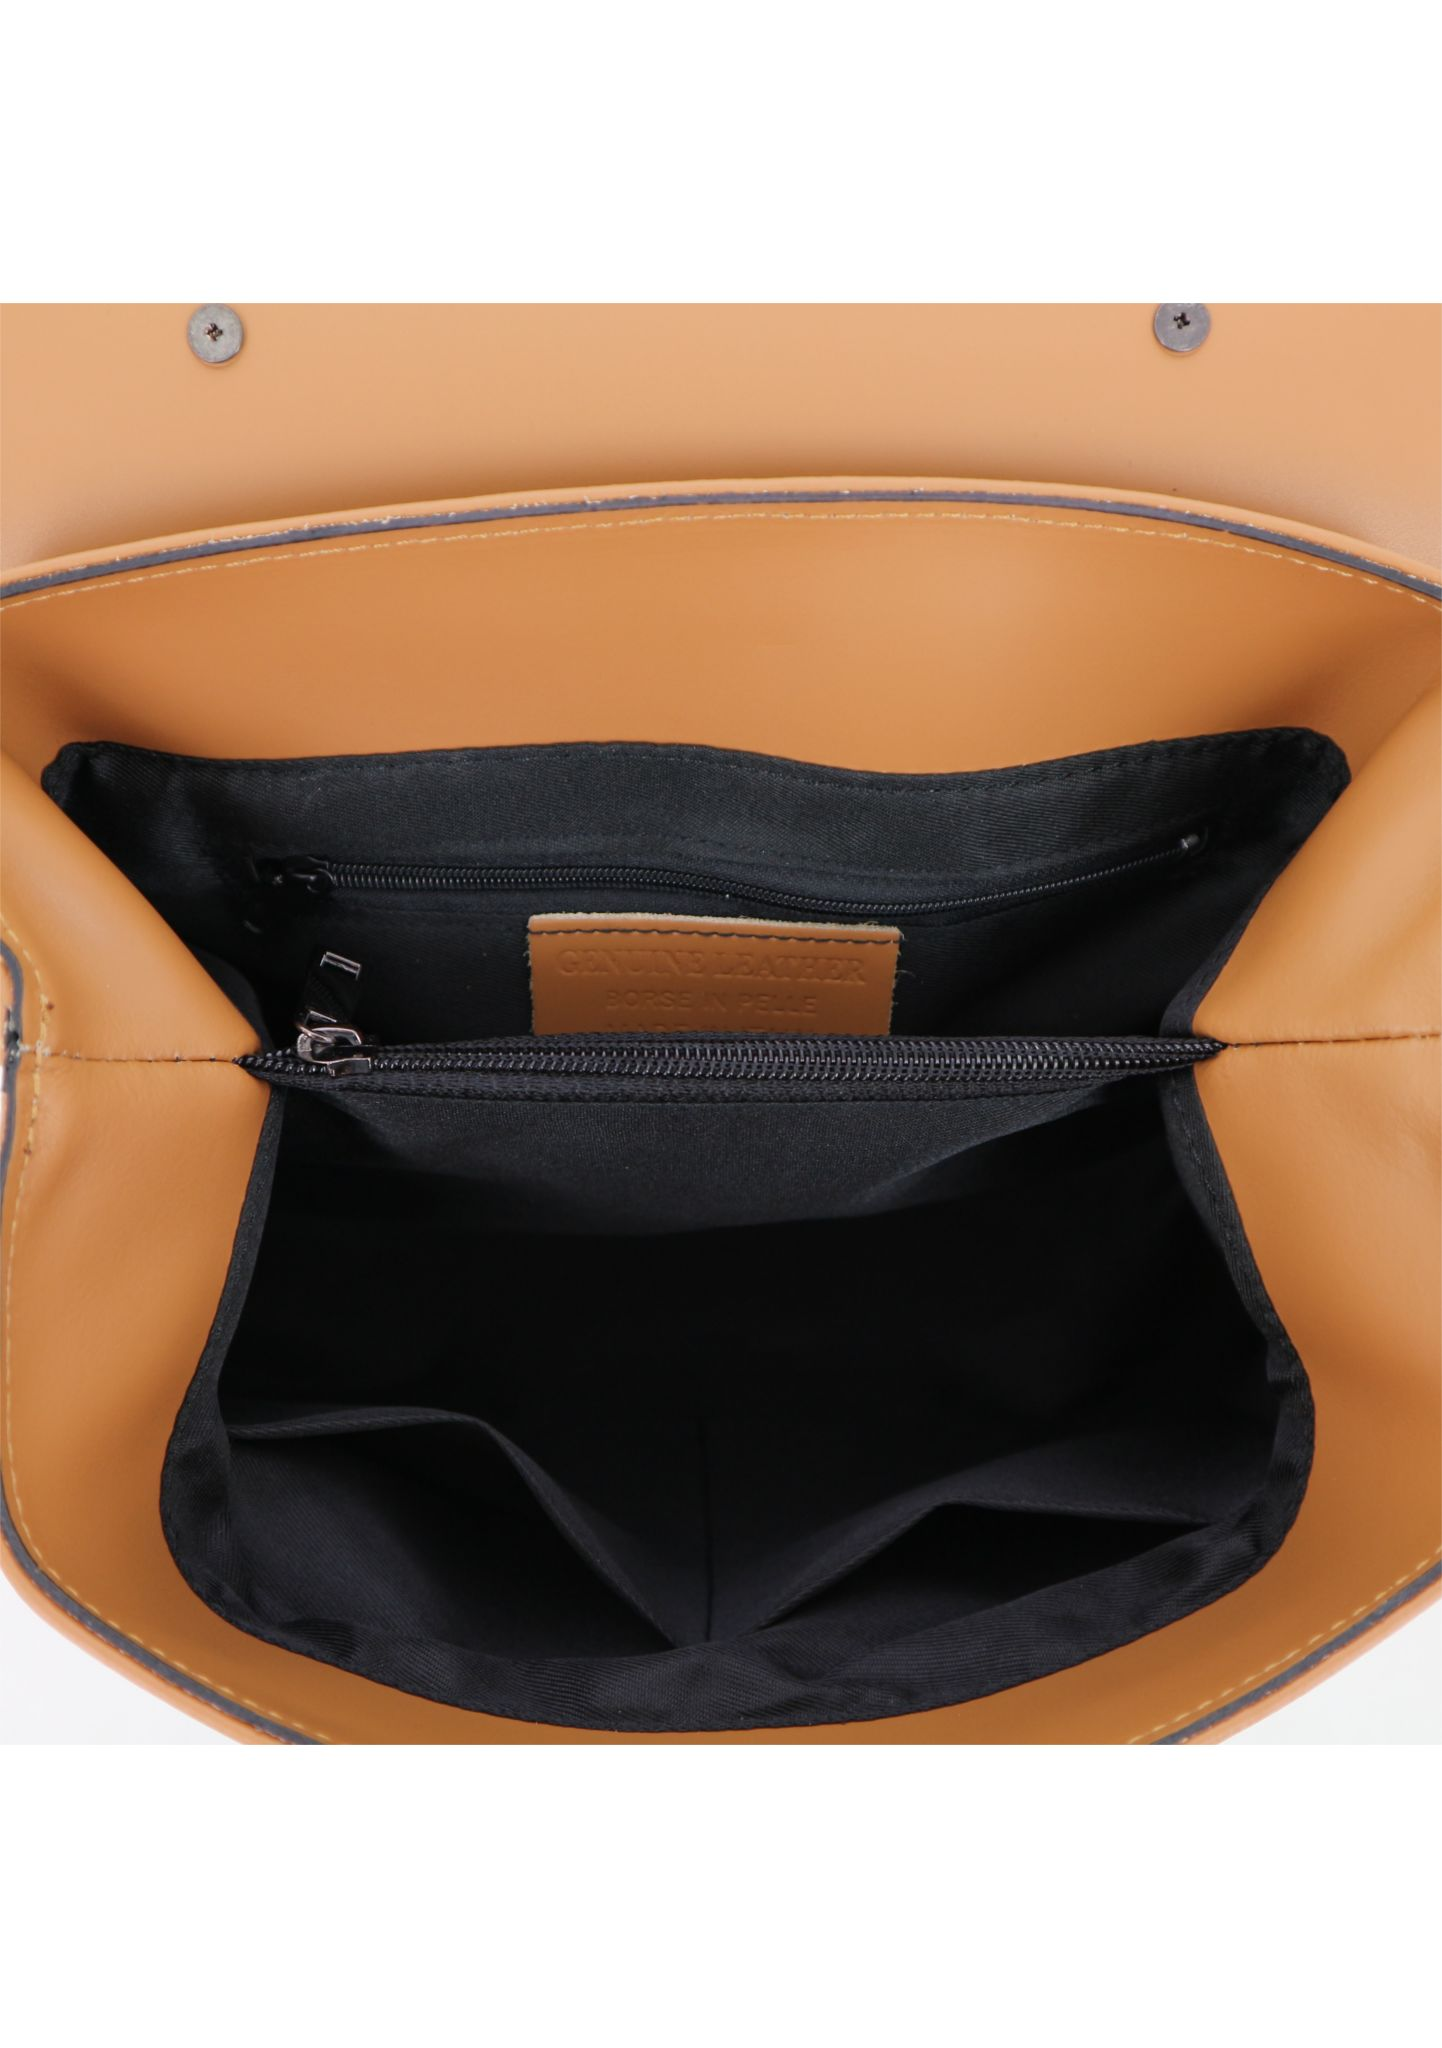 Cognac Ruga Leather Handbag With Detachable Strap 034 detail 8